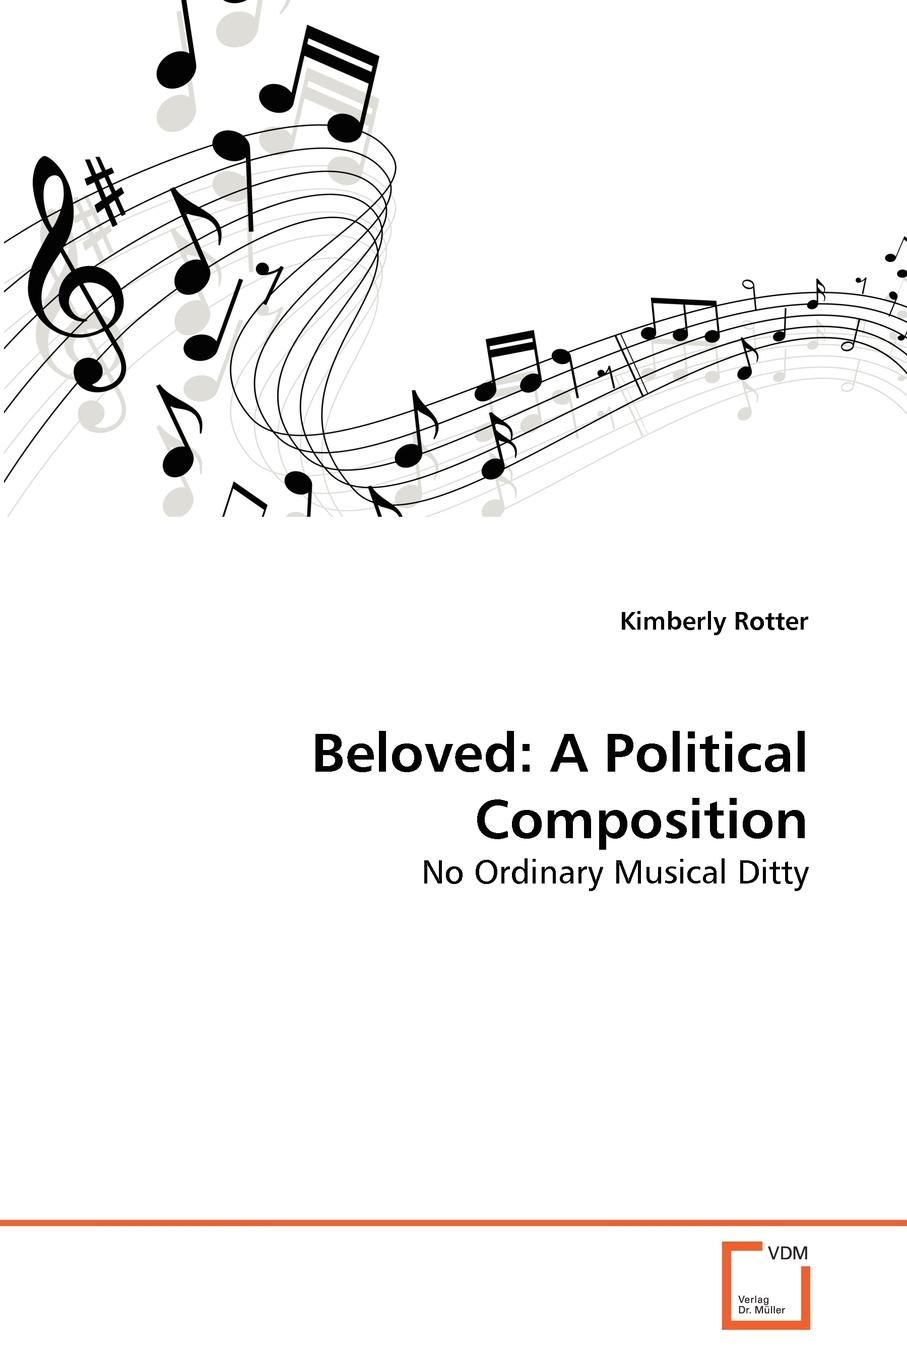 Kimberly Rotter Beloved. A Political Composition